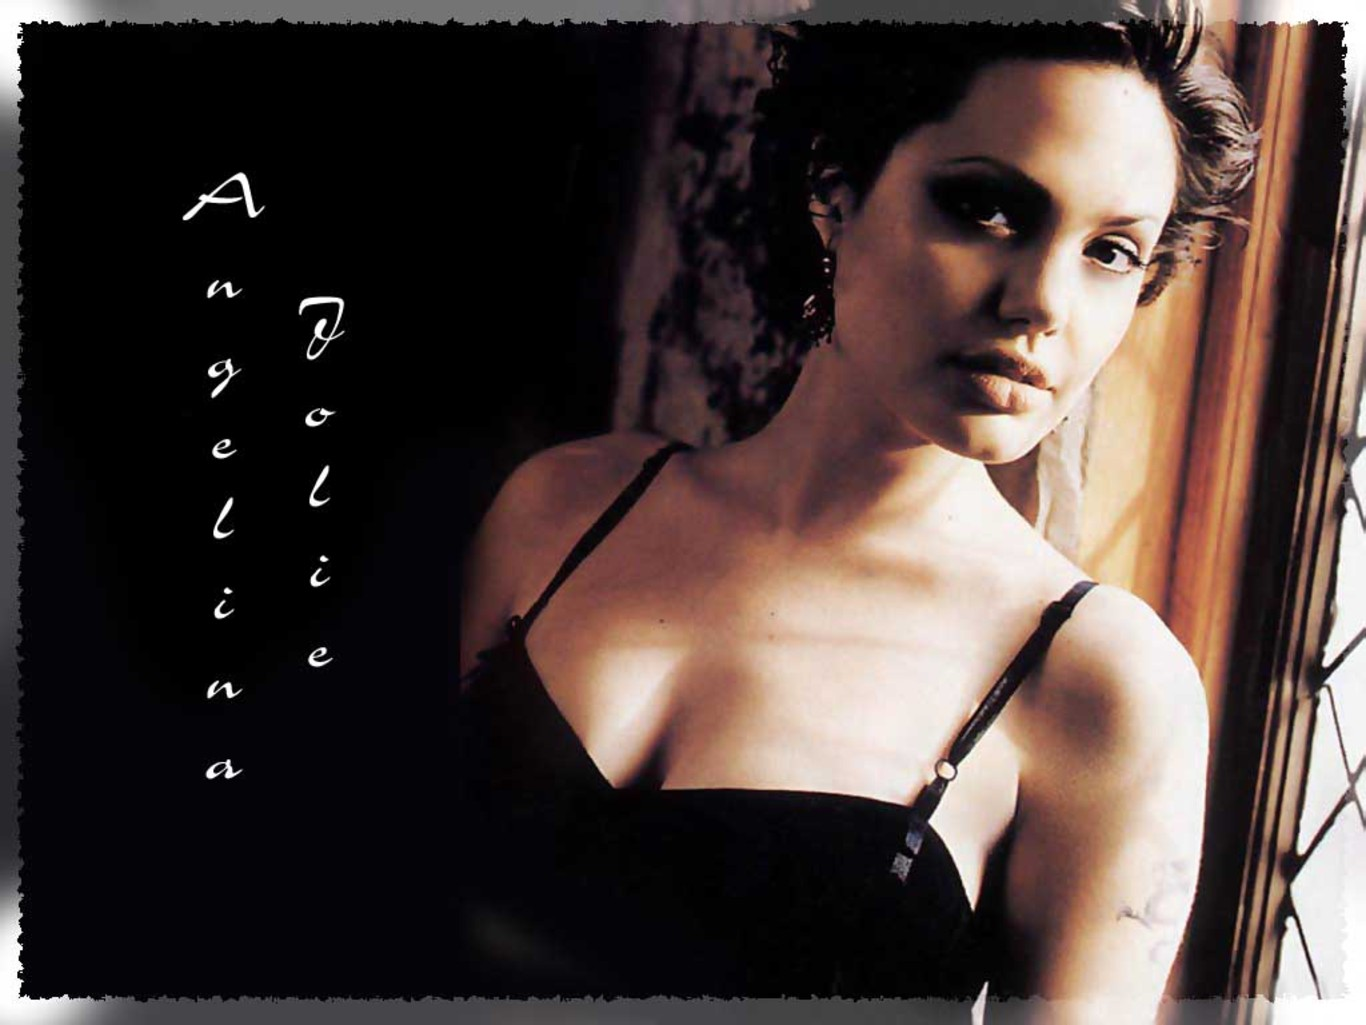 http://3.bp.blogspot.com/-6hmFxlW9OQ4/Ts41yWkB4JI/AAAAAAAAE2I/SaA7s0N4f7c/s1600/Angelina_jolie_H%2BD%2B_hollywood_wallpapers_on%2B_OllyWooD.Blogspot.com.jpeg